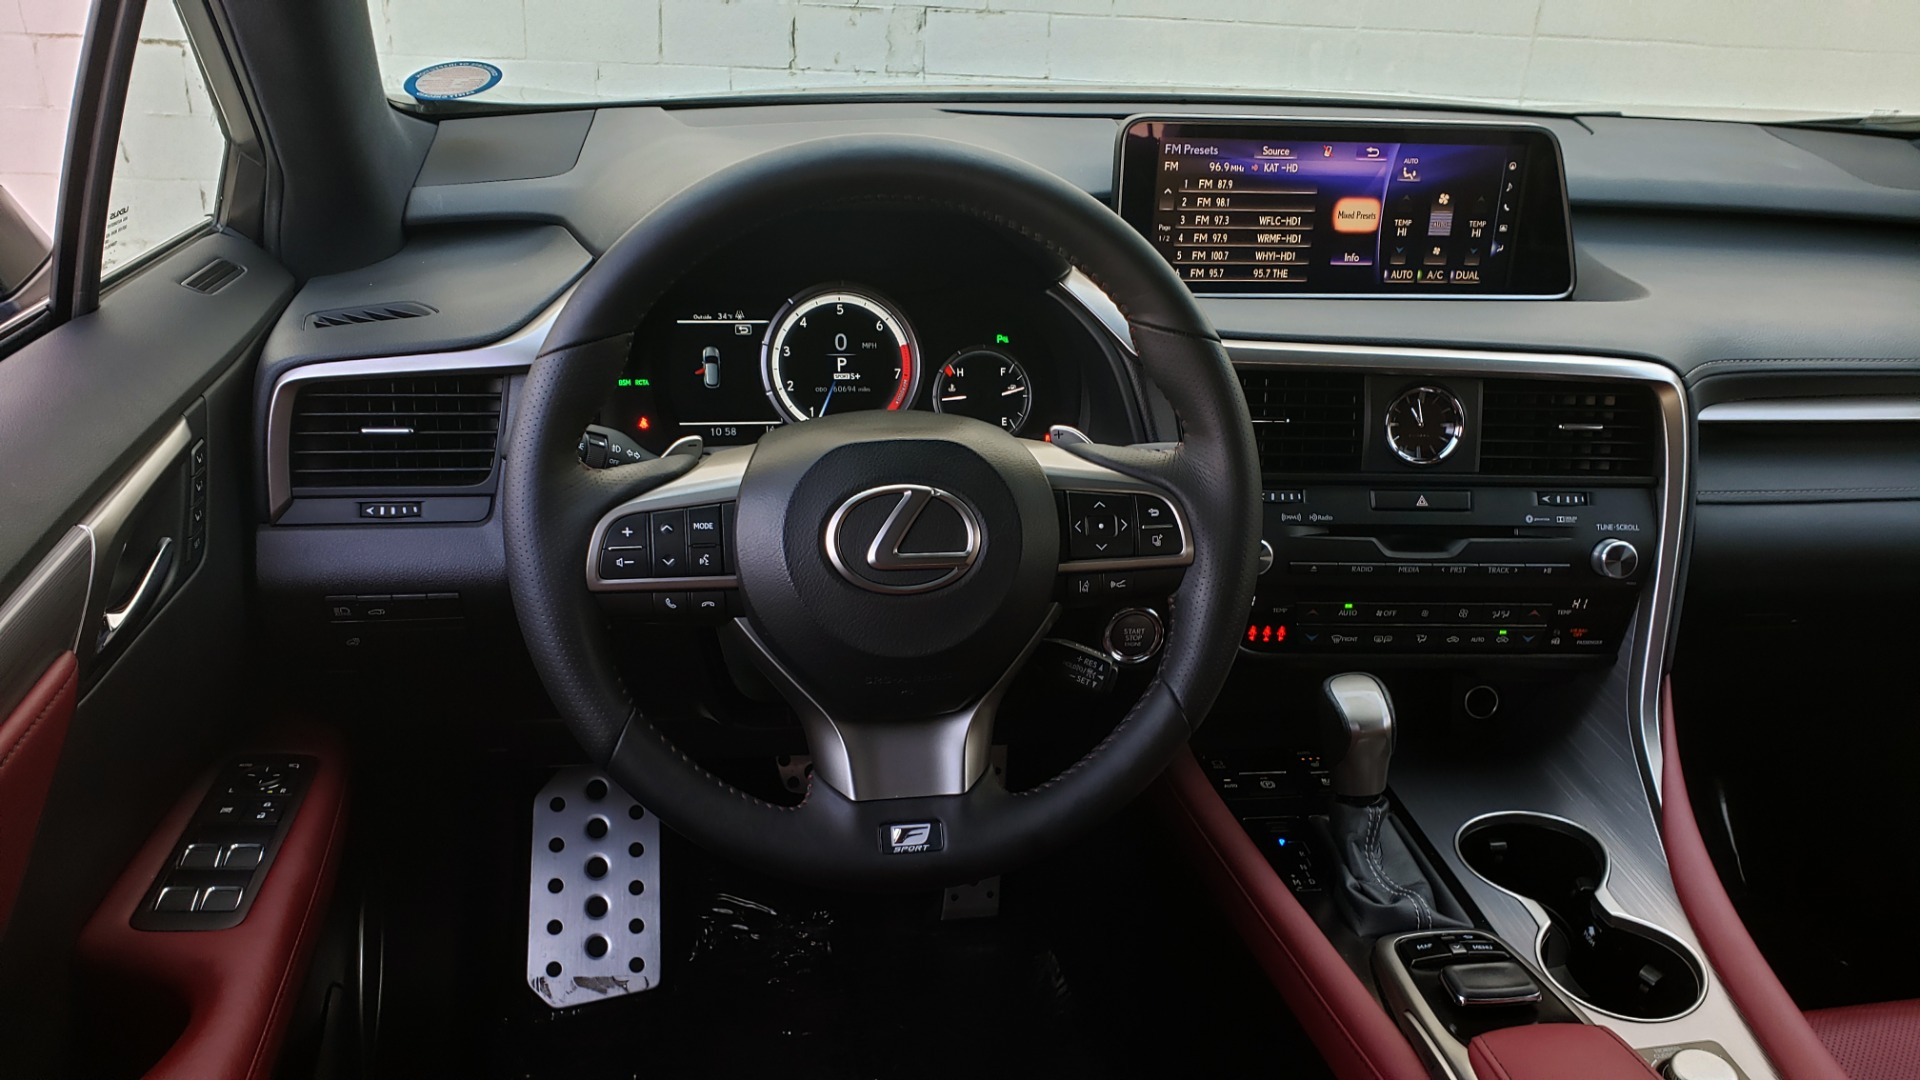 Used 2017 Lexus RX350 AWD F-SPORT / NAV / SUNROOF / BSM / PARK ASST / TOWING / REARVIE for sale Sold at Formula Imports in Charlotte NC 28227 56